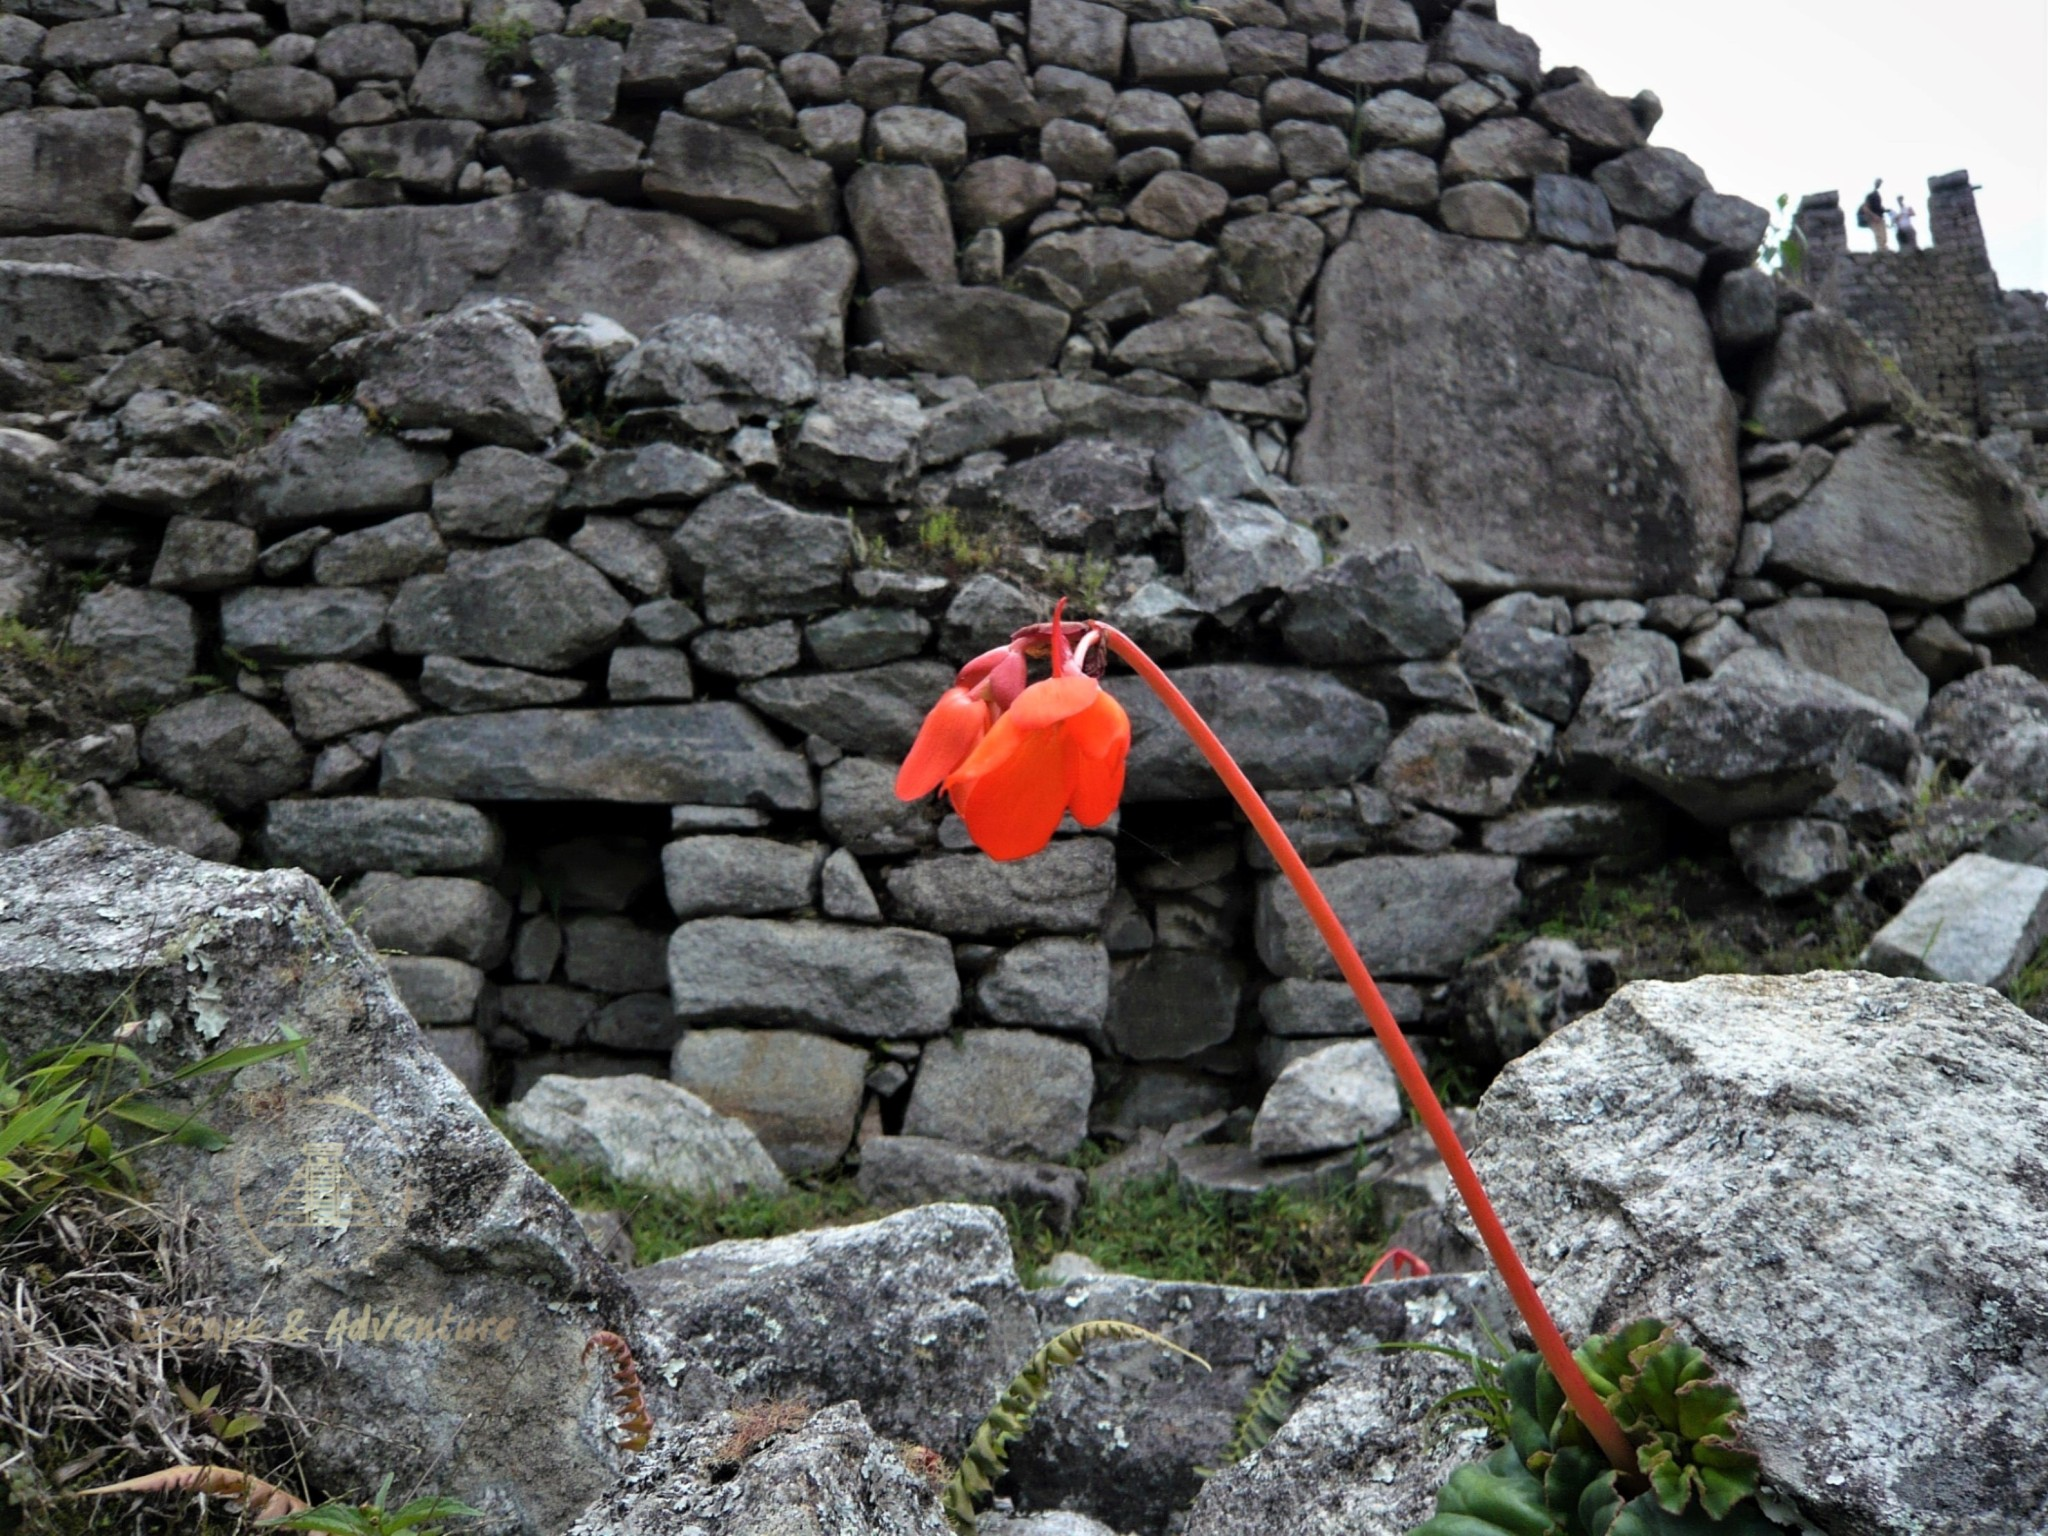 A single bright orange flower and stem growing from Incan stone ruins.